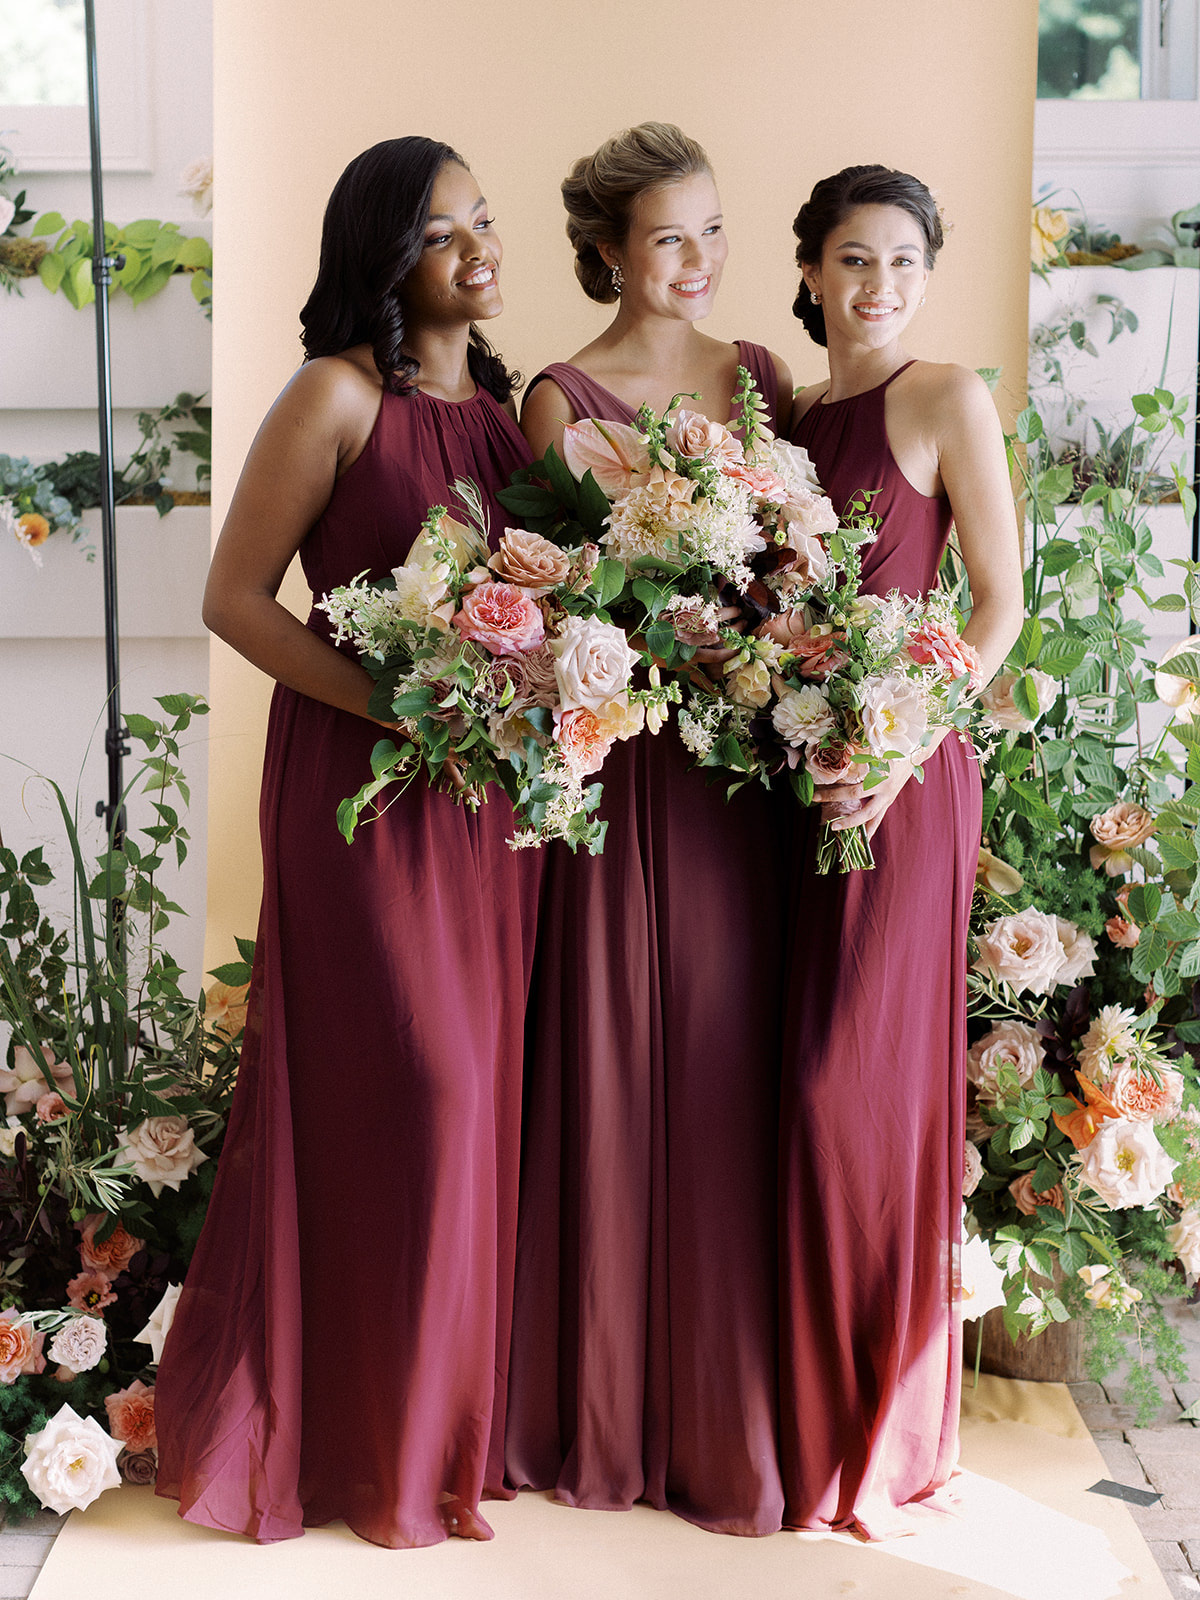 Bridesmaids posing for a group photo wearing David's Bridal gowns in the colors Wine and Chianti for the fall season.